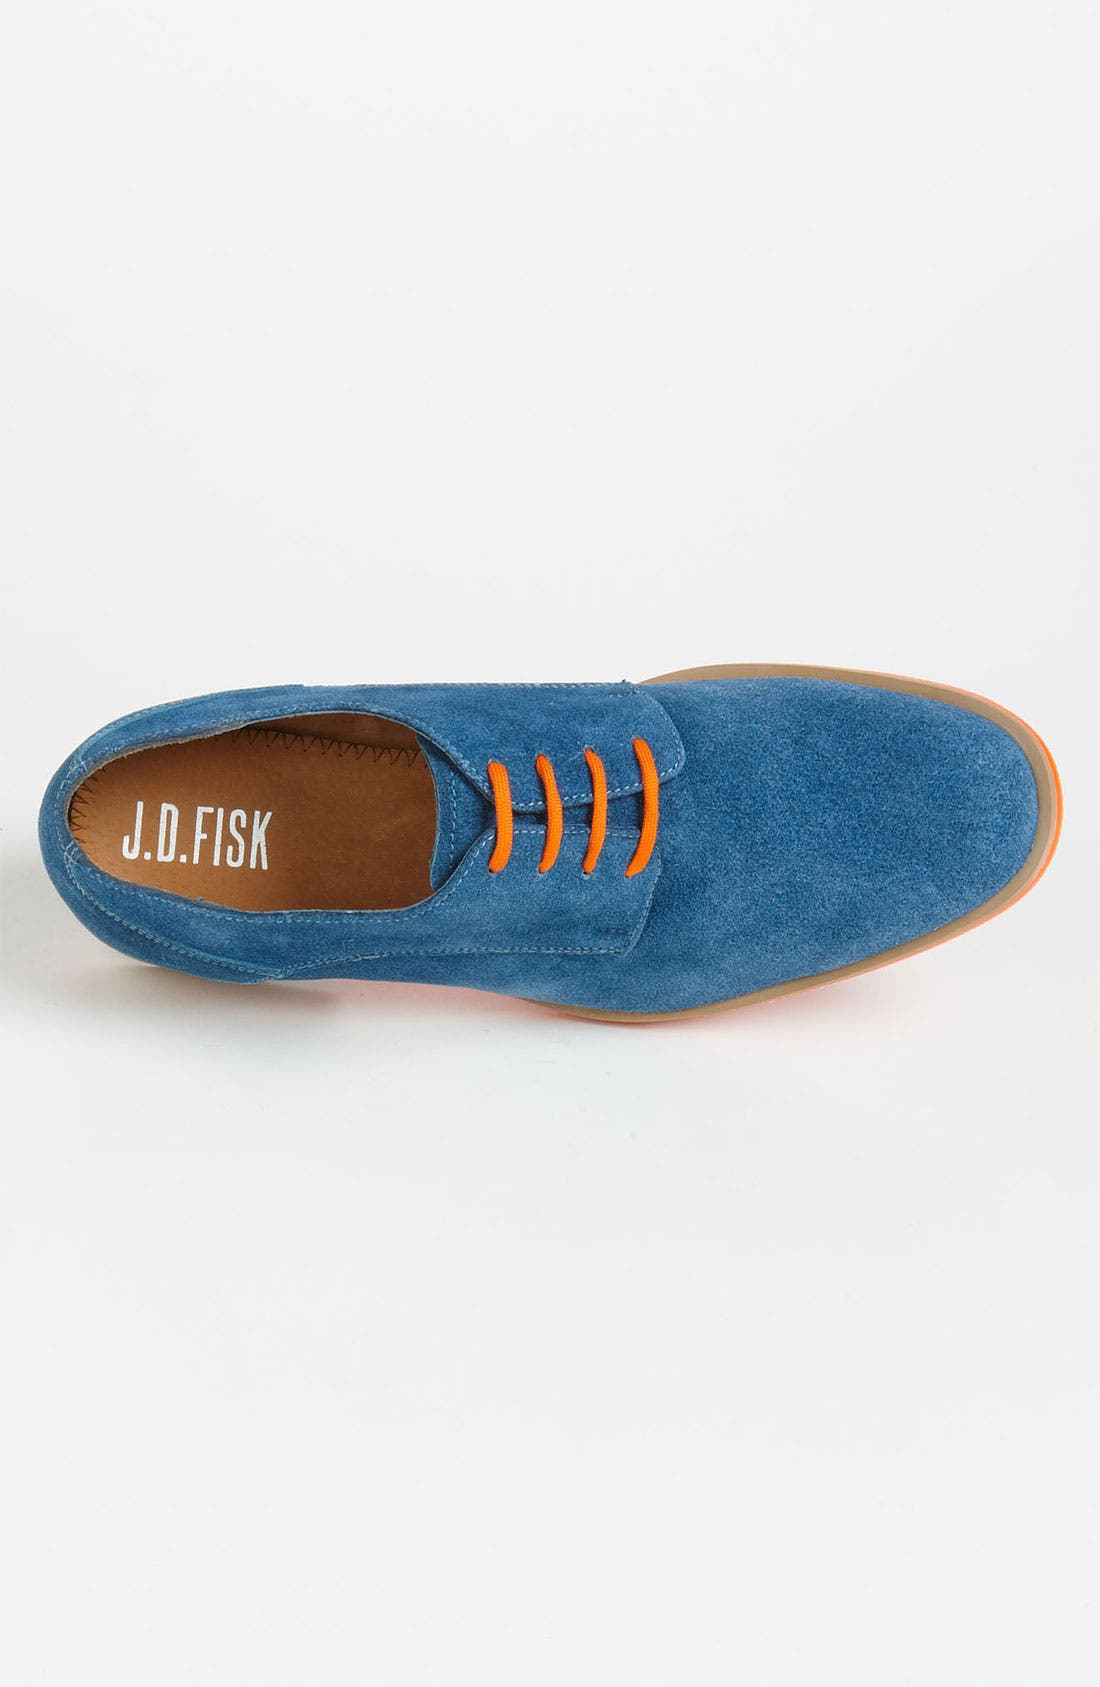 Alternate Image 3  - J.D. Fisk 'Callum' Suede Buck Shoe